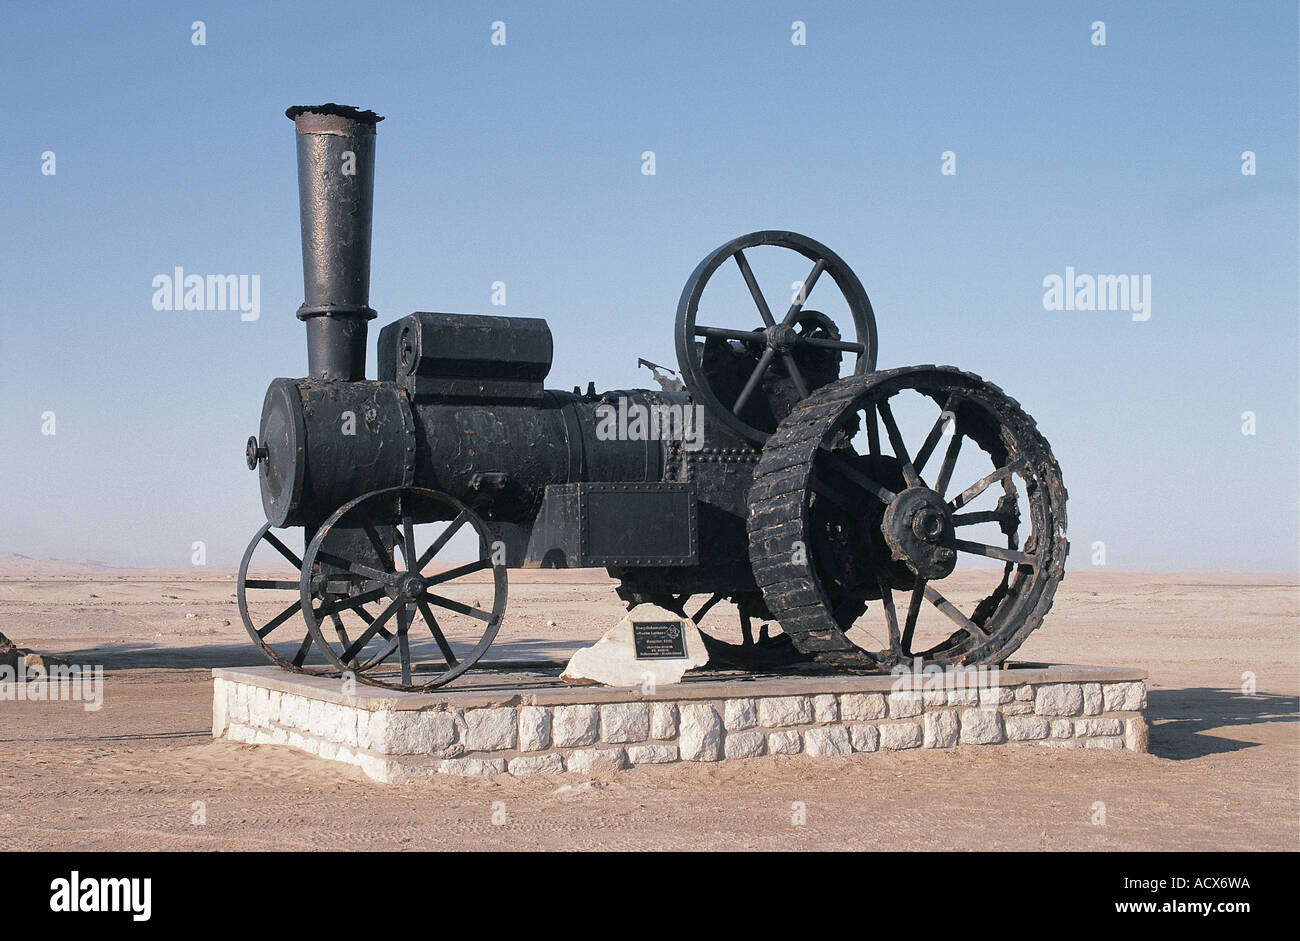 Old 1896 Steam Traction Engine known as Martin Luther abandoned on the outskirts of Swakopmund Namibia south west Africa - Stock Image